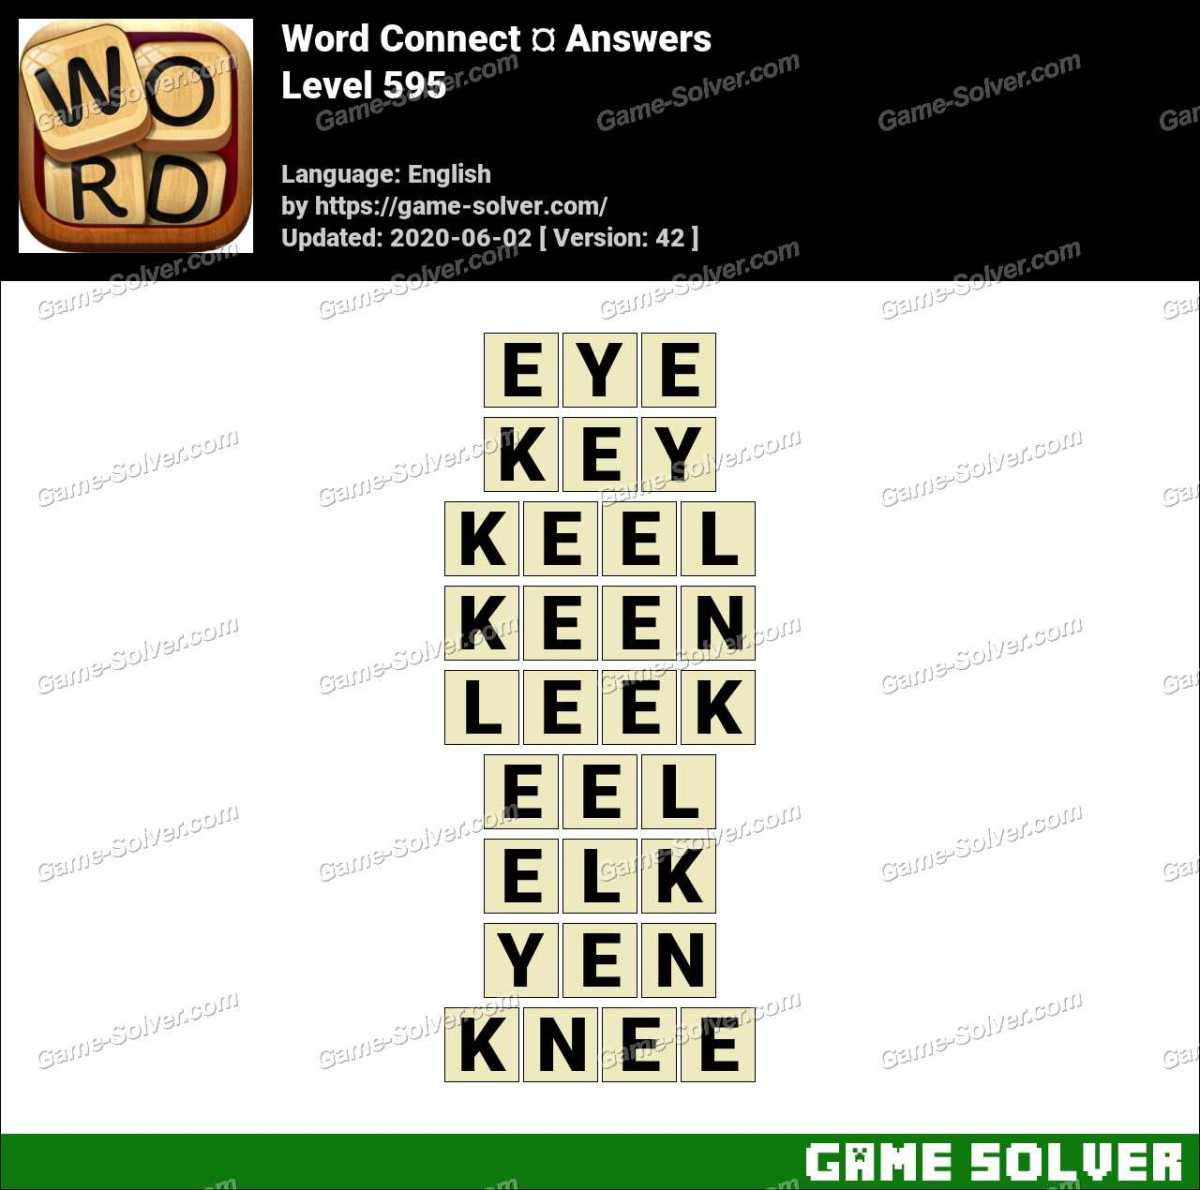 Word Connect Level 595 Answers